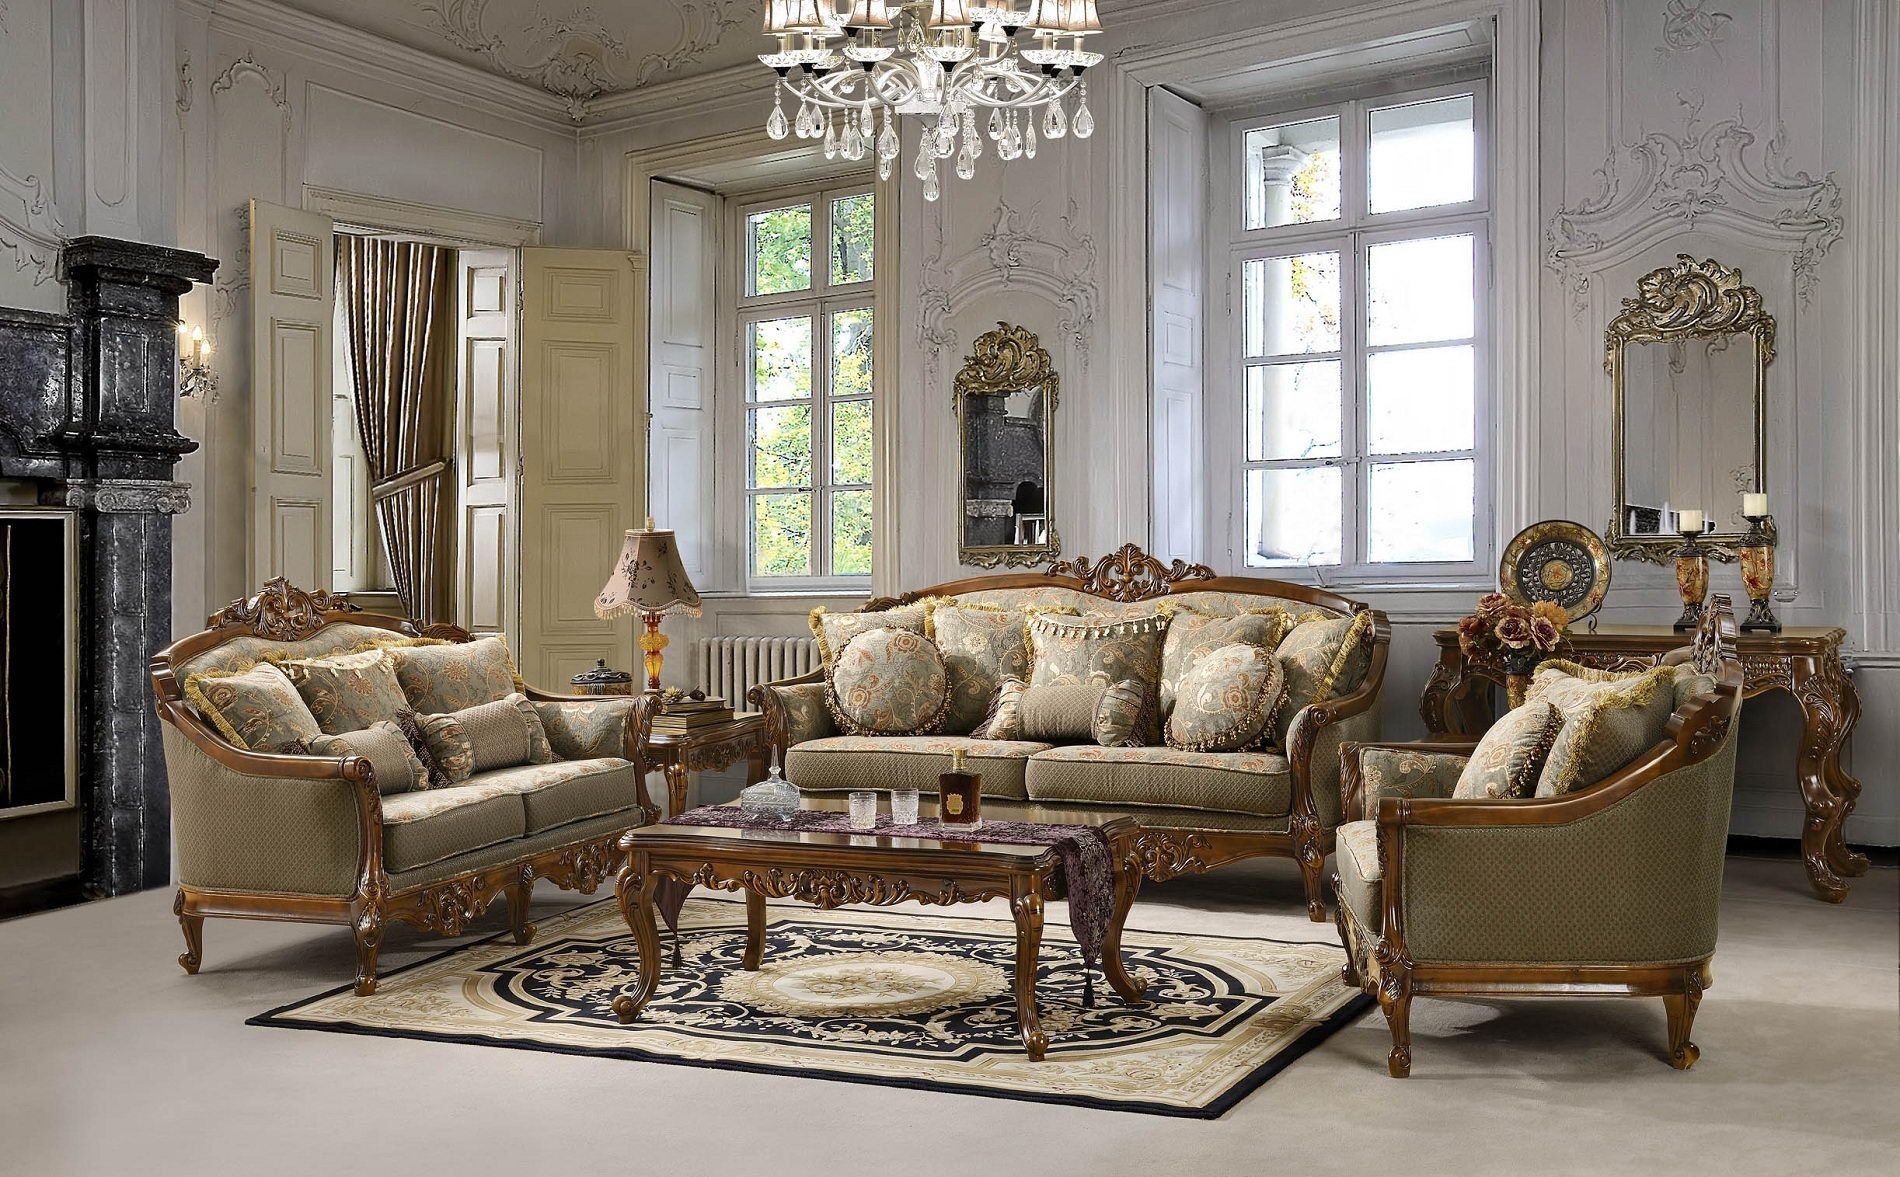 Antique Living Room Designs Fall In Love With Vintage And Victorian Style Design  Home Decor